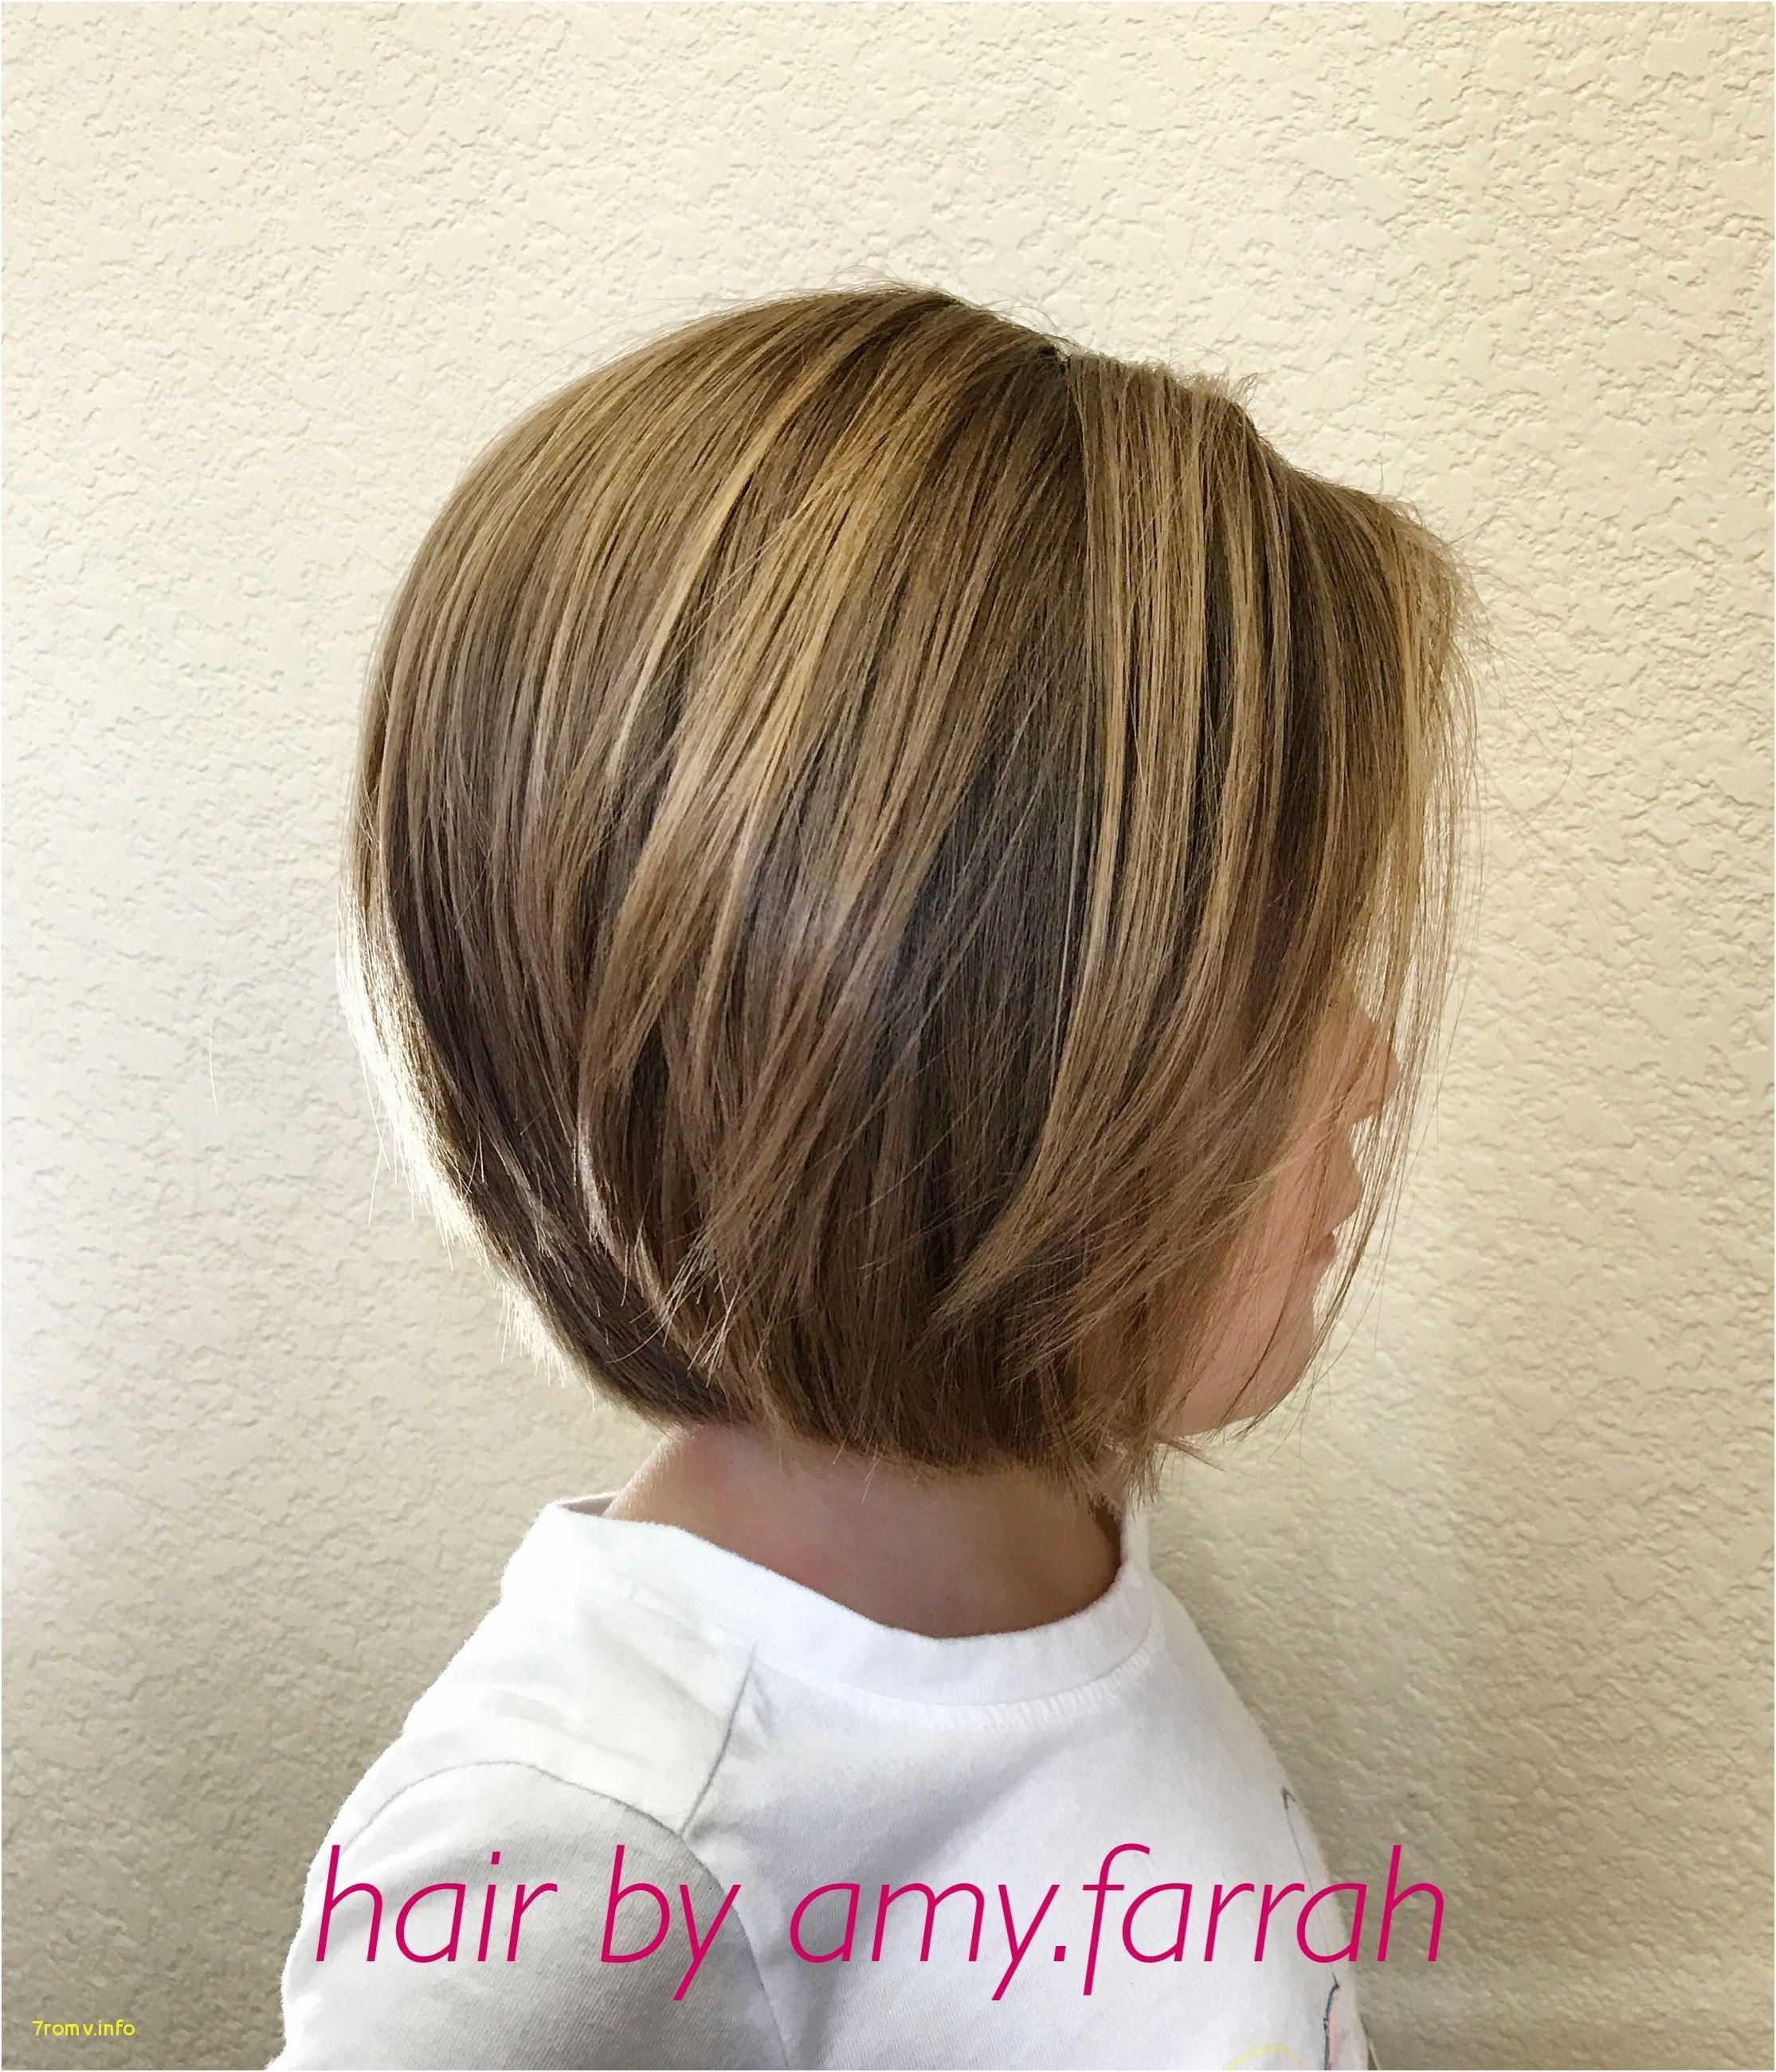 The Best Short Girl Hair Styles Bobsshortgirlhairstyles Bob Haircut For Girls Little Girl Haircuts Little Girl Bob Haircut